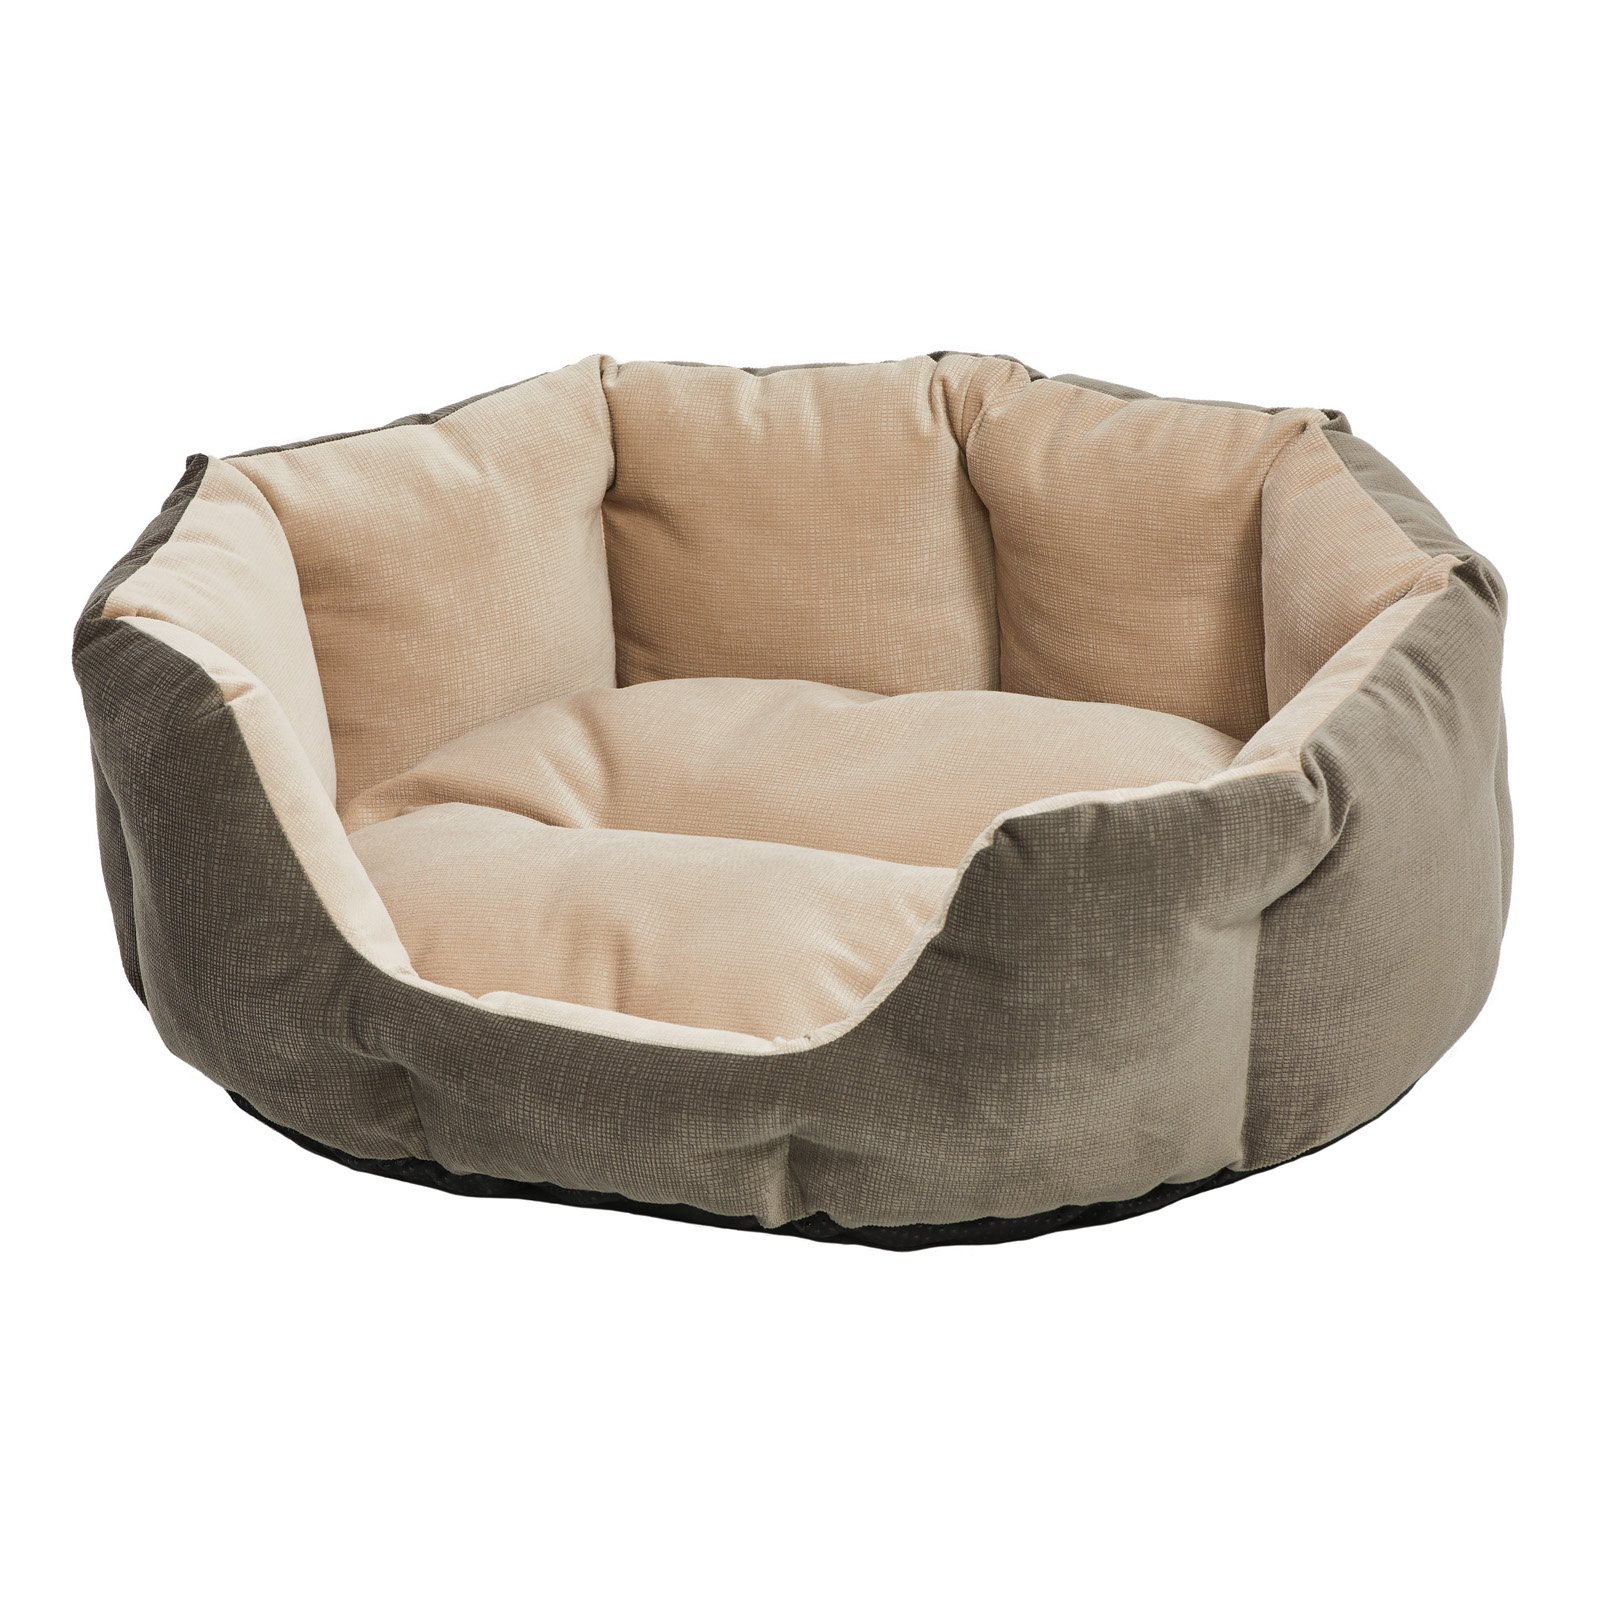 Midwest Homes for Pets QuietTime Deluxe Tulip Pet Bed